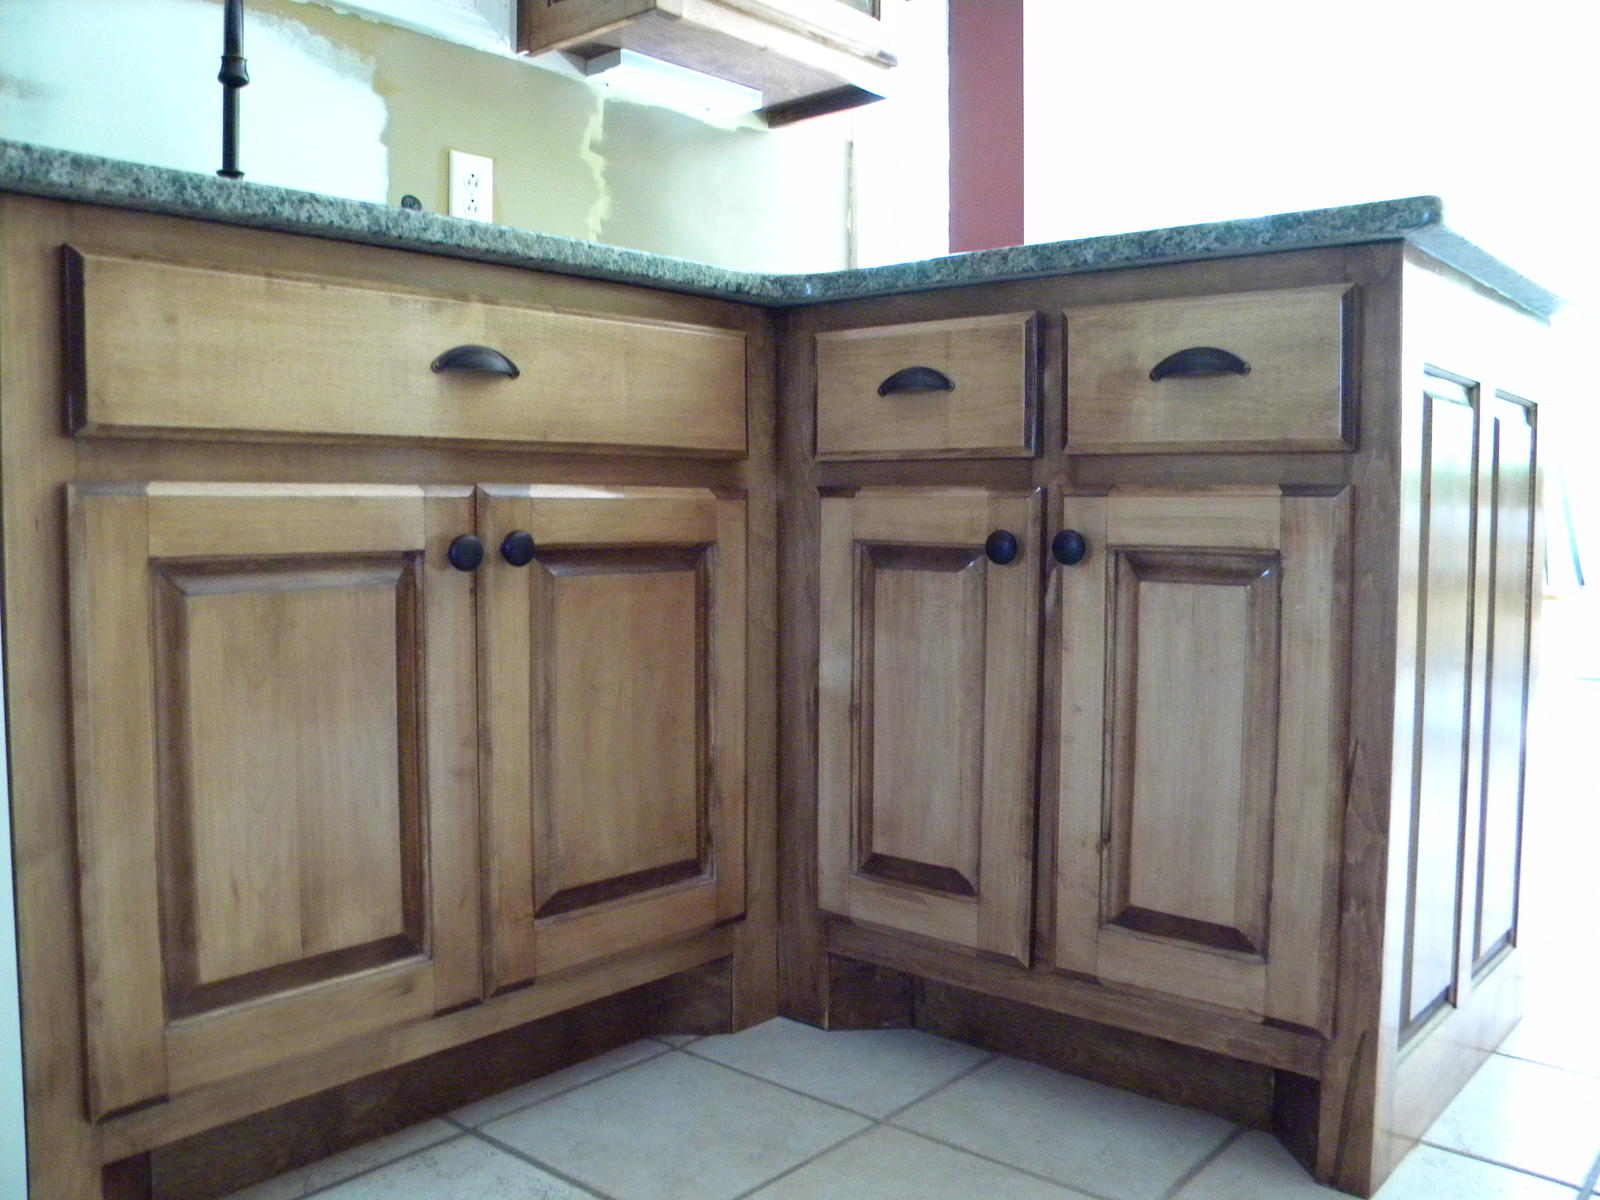 Dark Stained Maple Kitchen Cabinets With Granit Countertop Pictures to